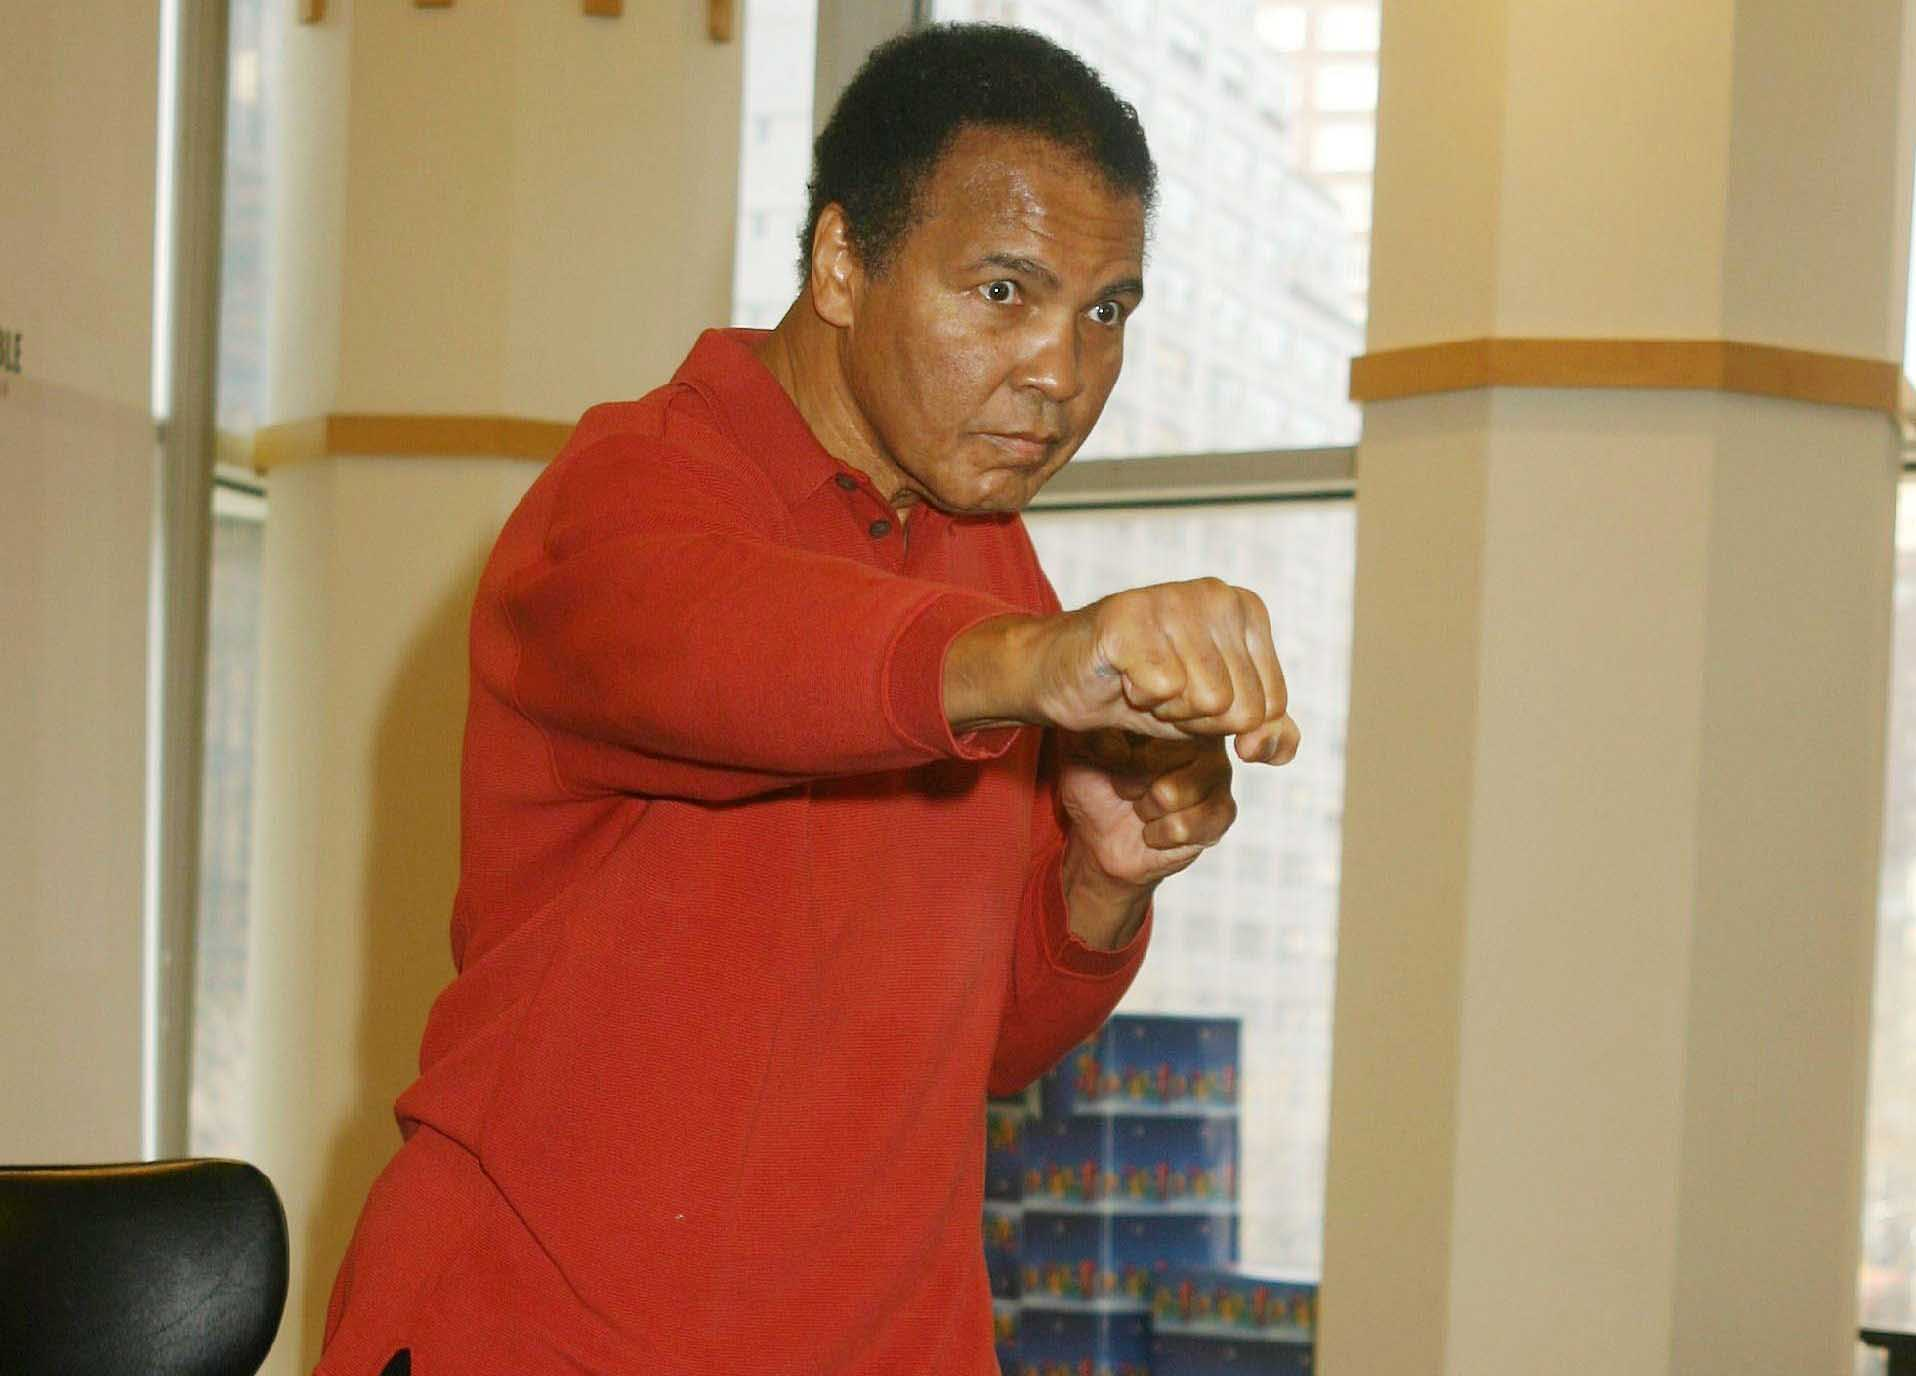 Muhammad Ali Jr. Questioned By Immigration Officials At Washington Airport